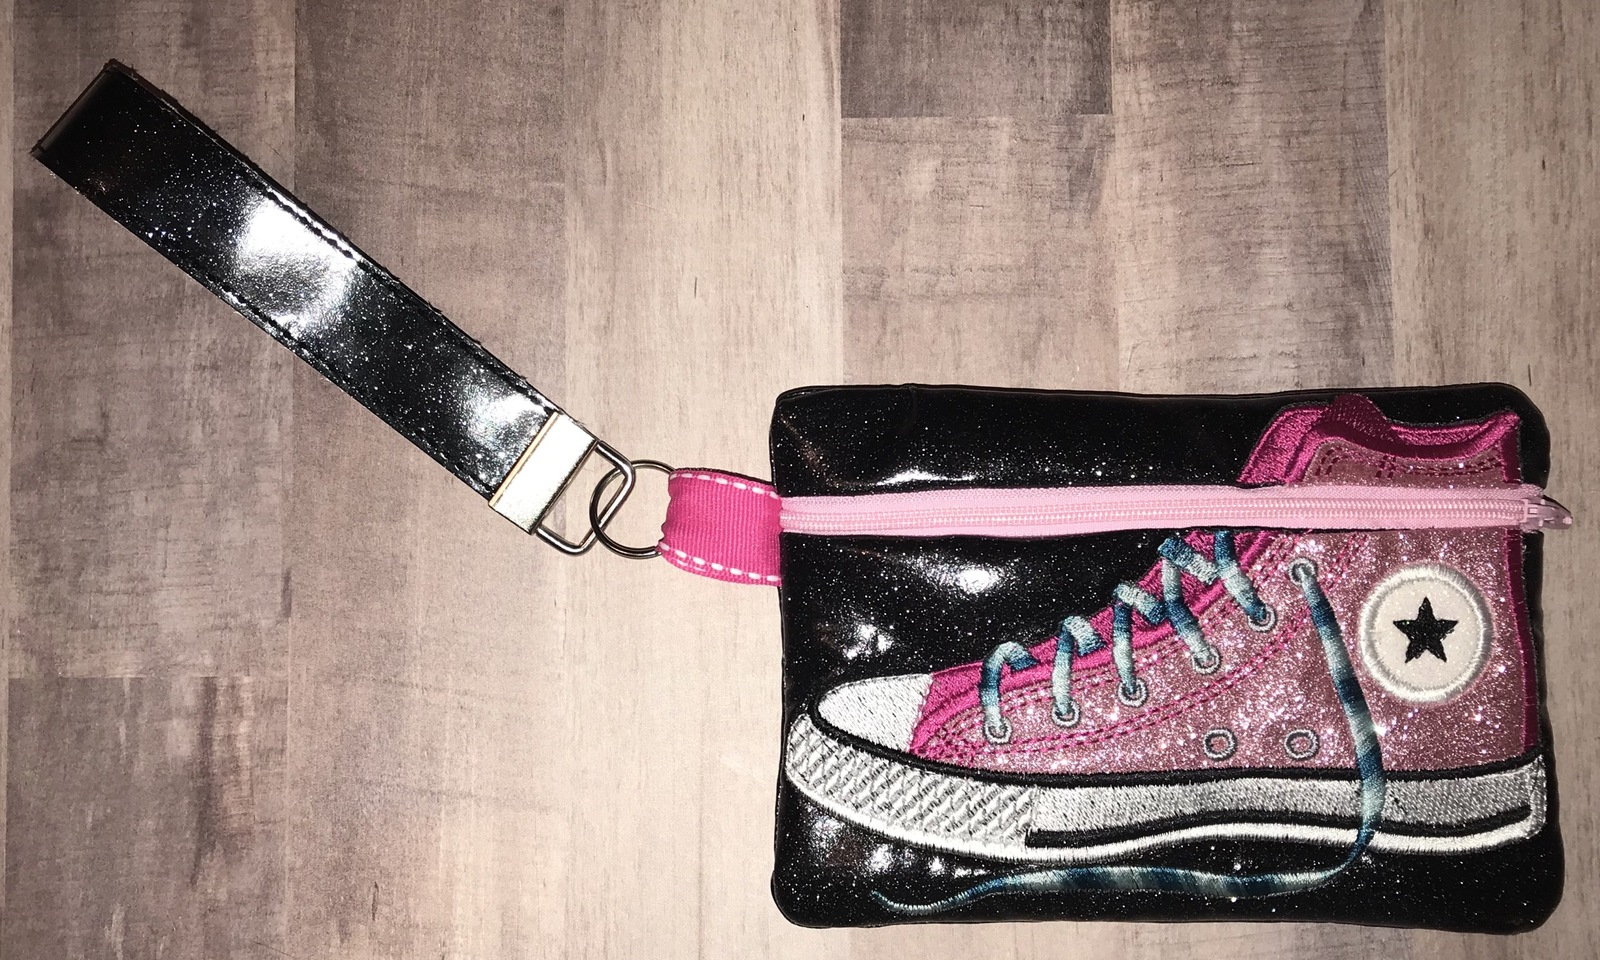 Pink with Black background Converse High Top Sneaker zip bag with handstrap - $18.00